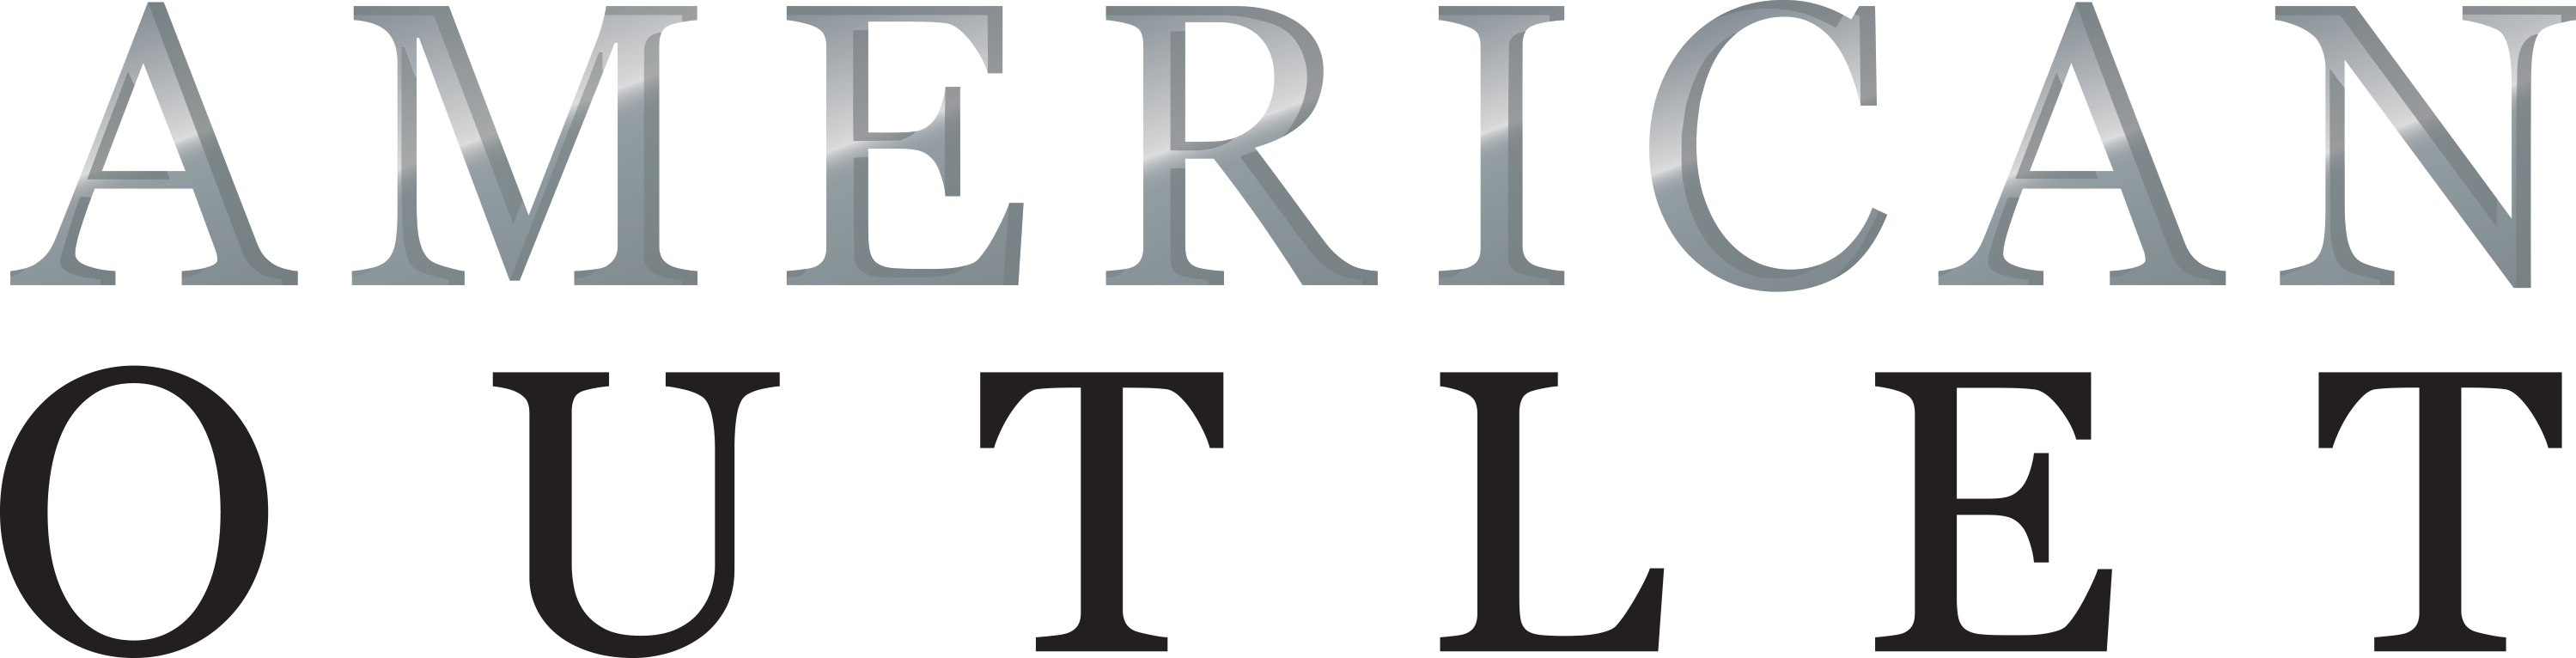 American Outlet logo